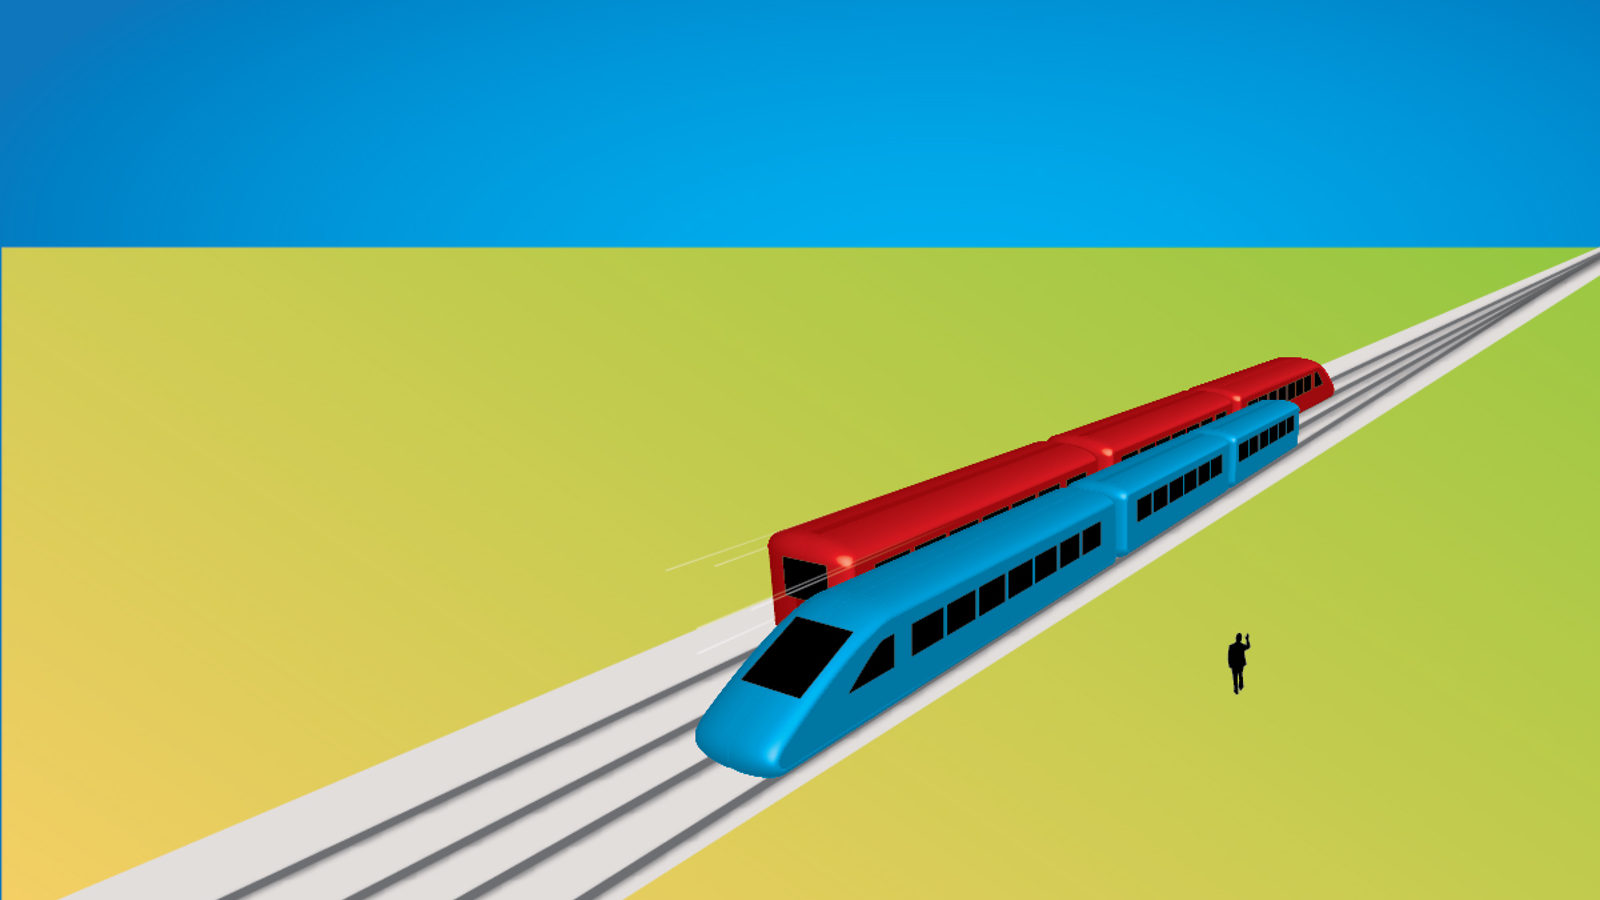 Illustration of red and blue train passing each other on tracks